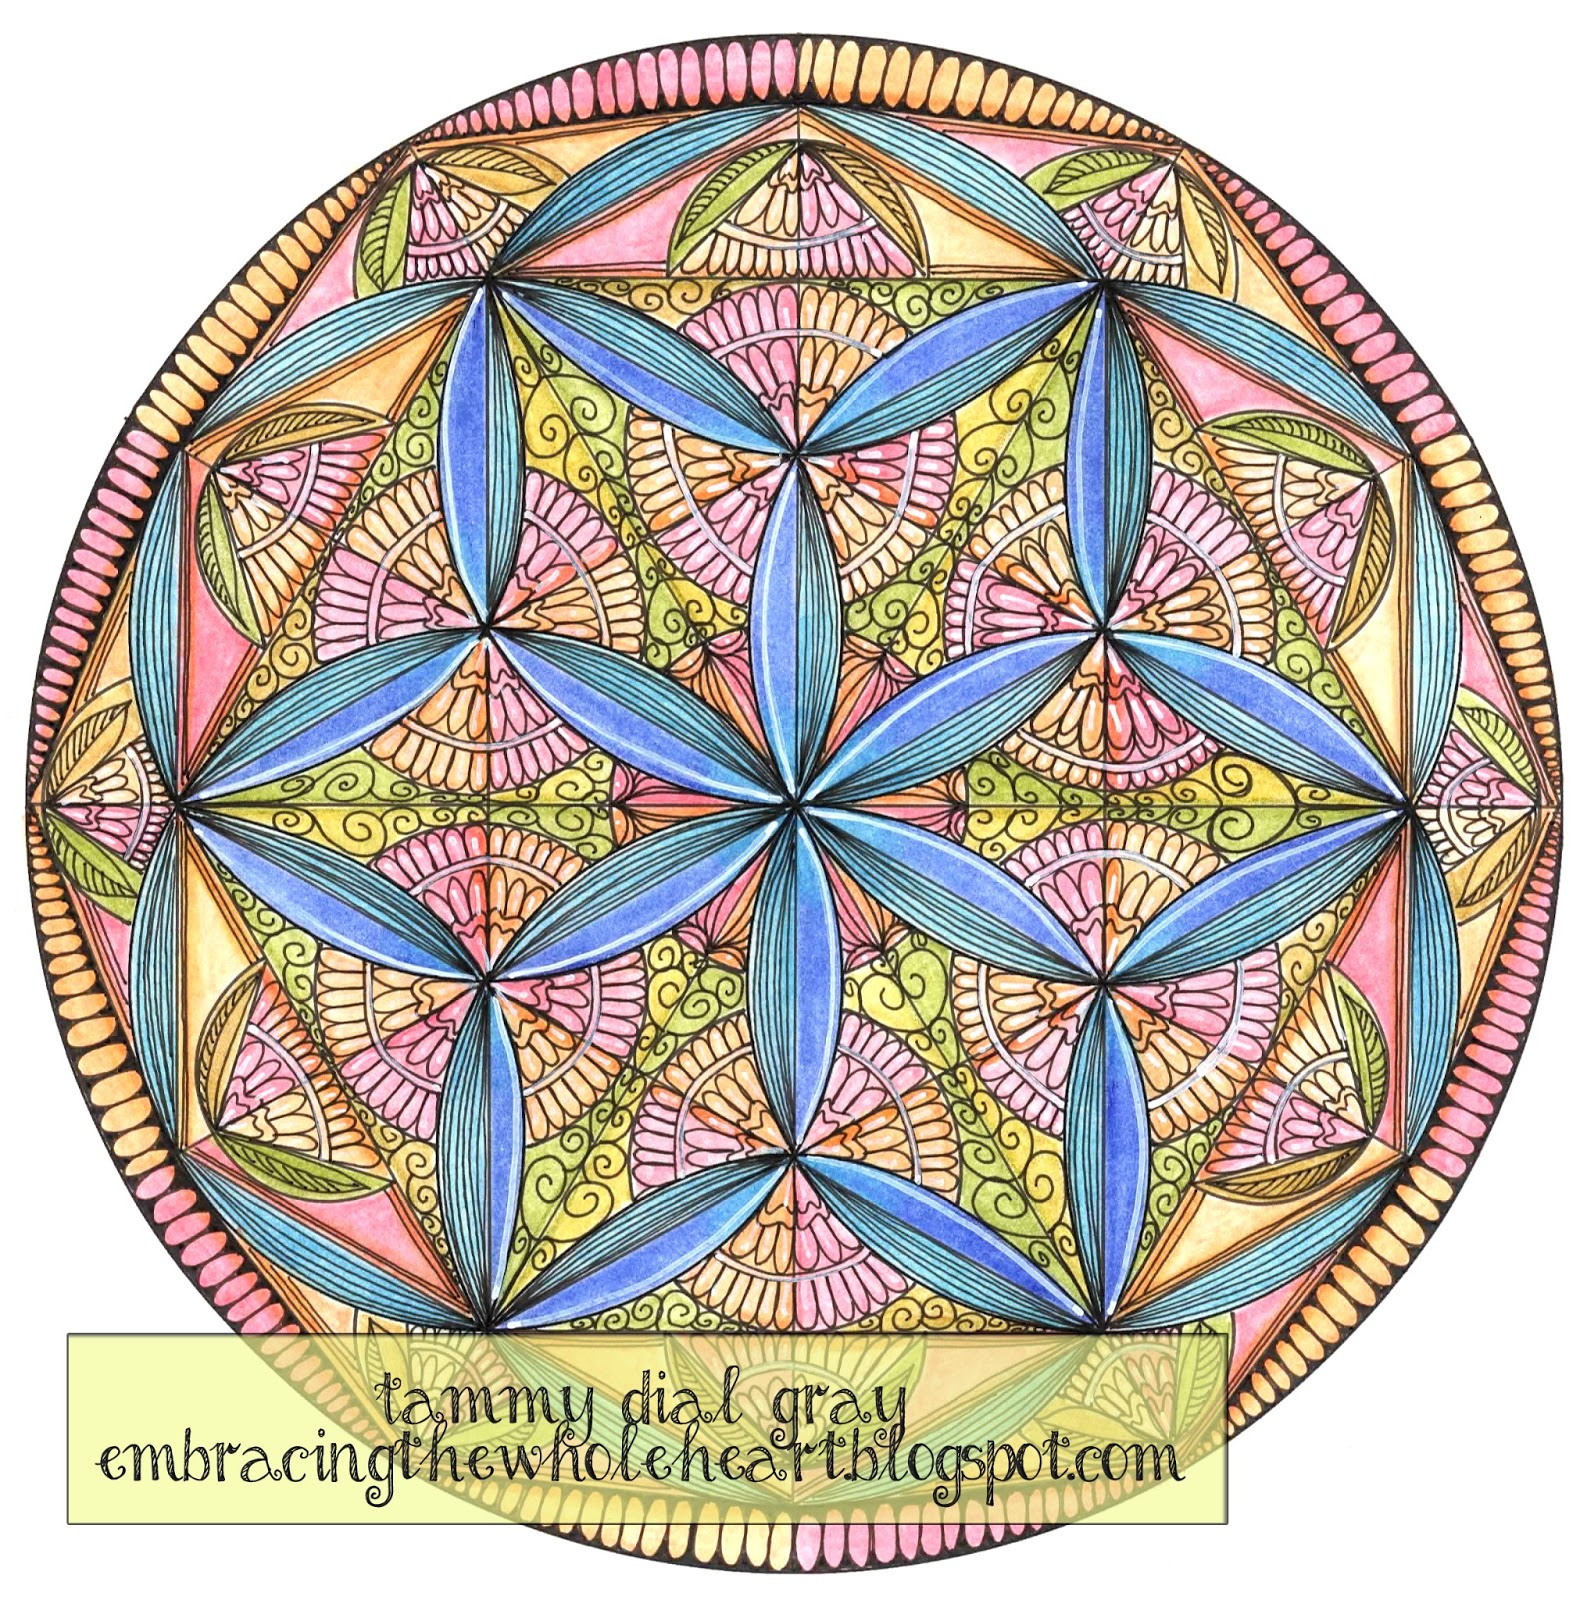 Embracing the Whole Heart Flower of Life Mandala